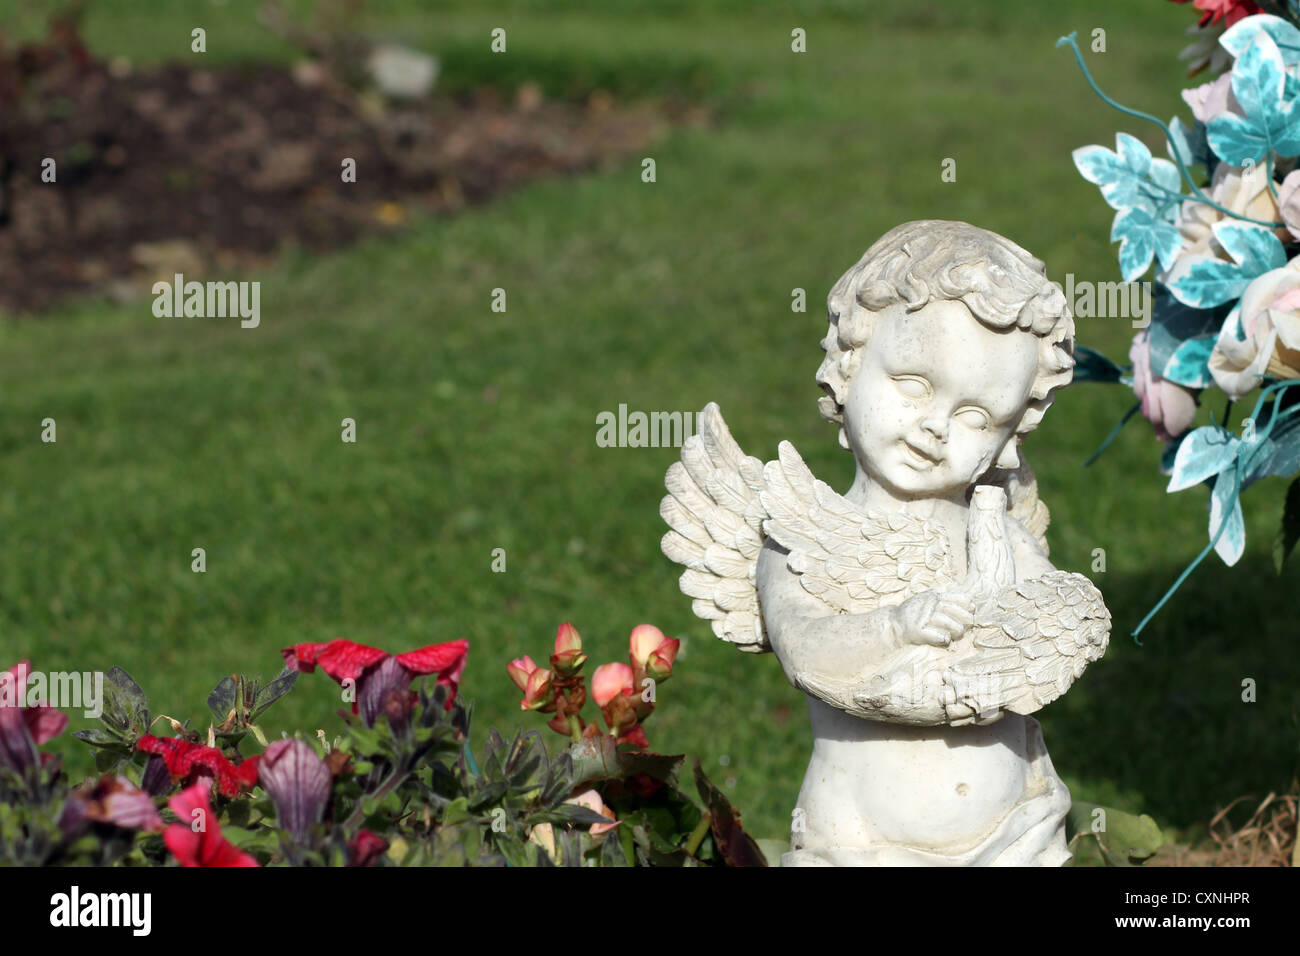 Memorial angel statue in cemetery next to blooming flowers. - Stock Image